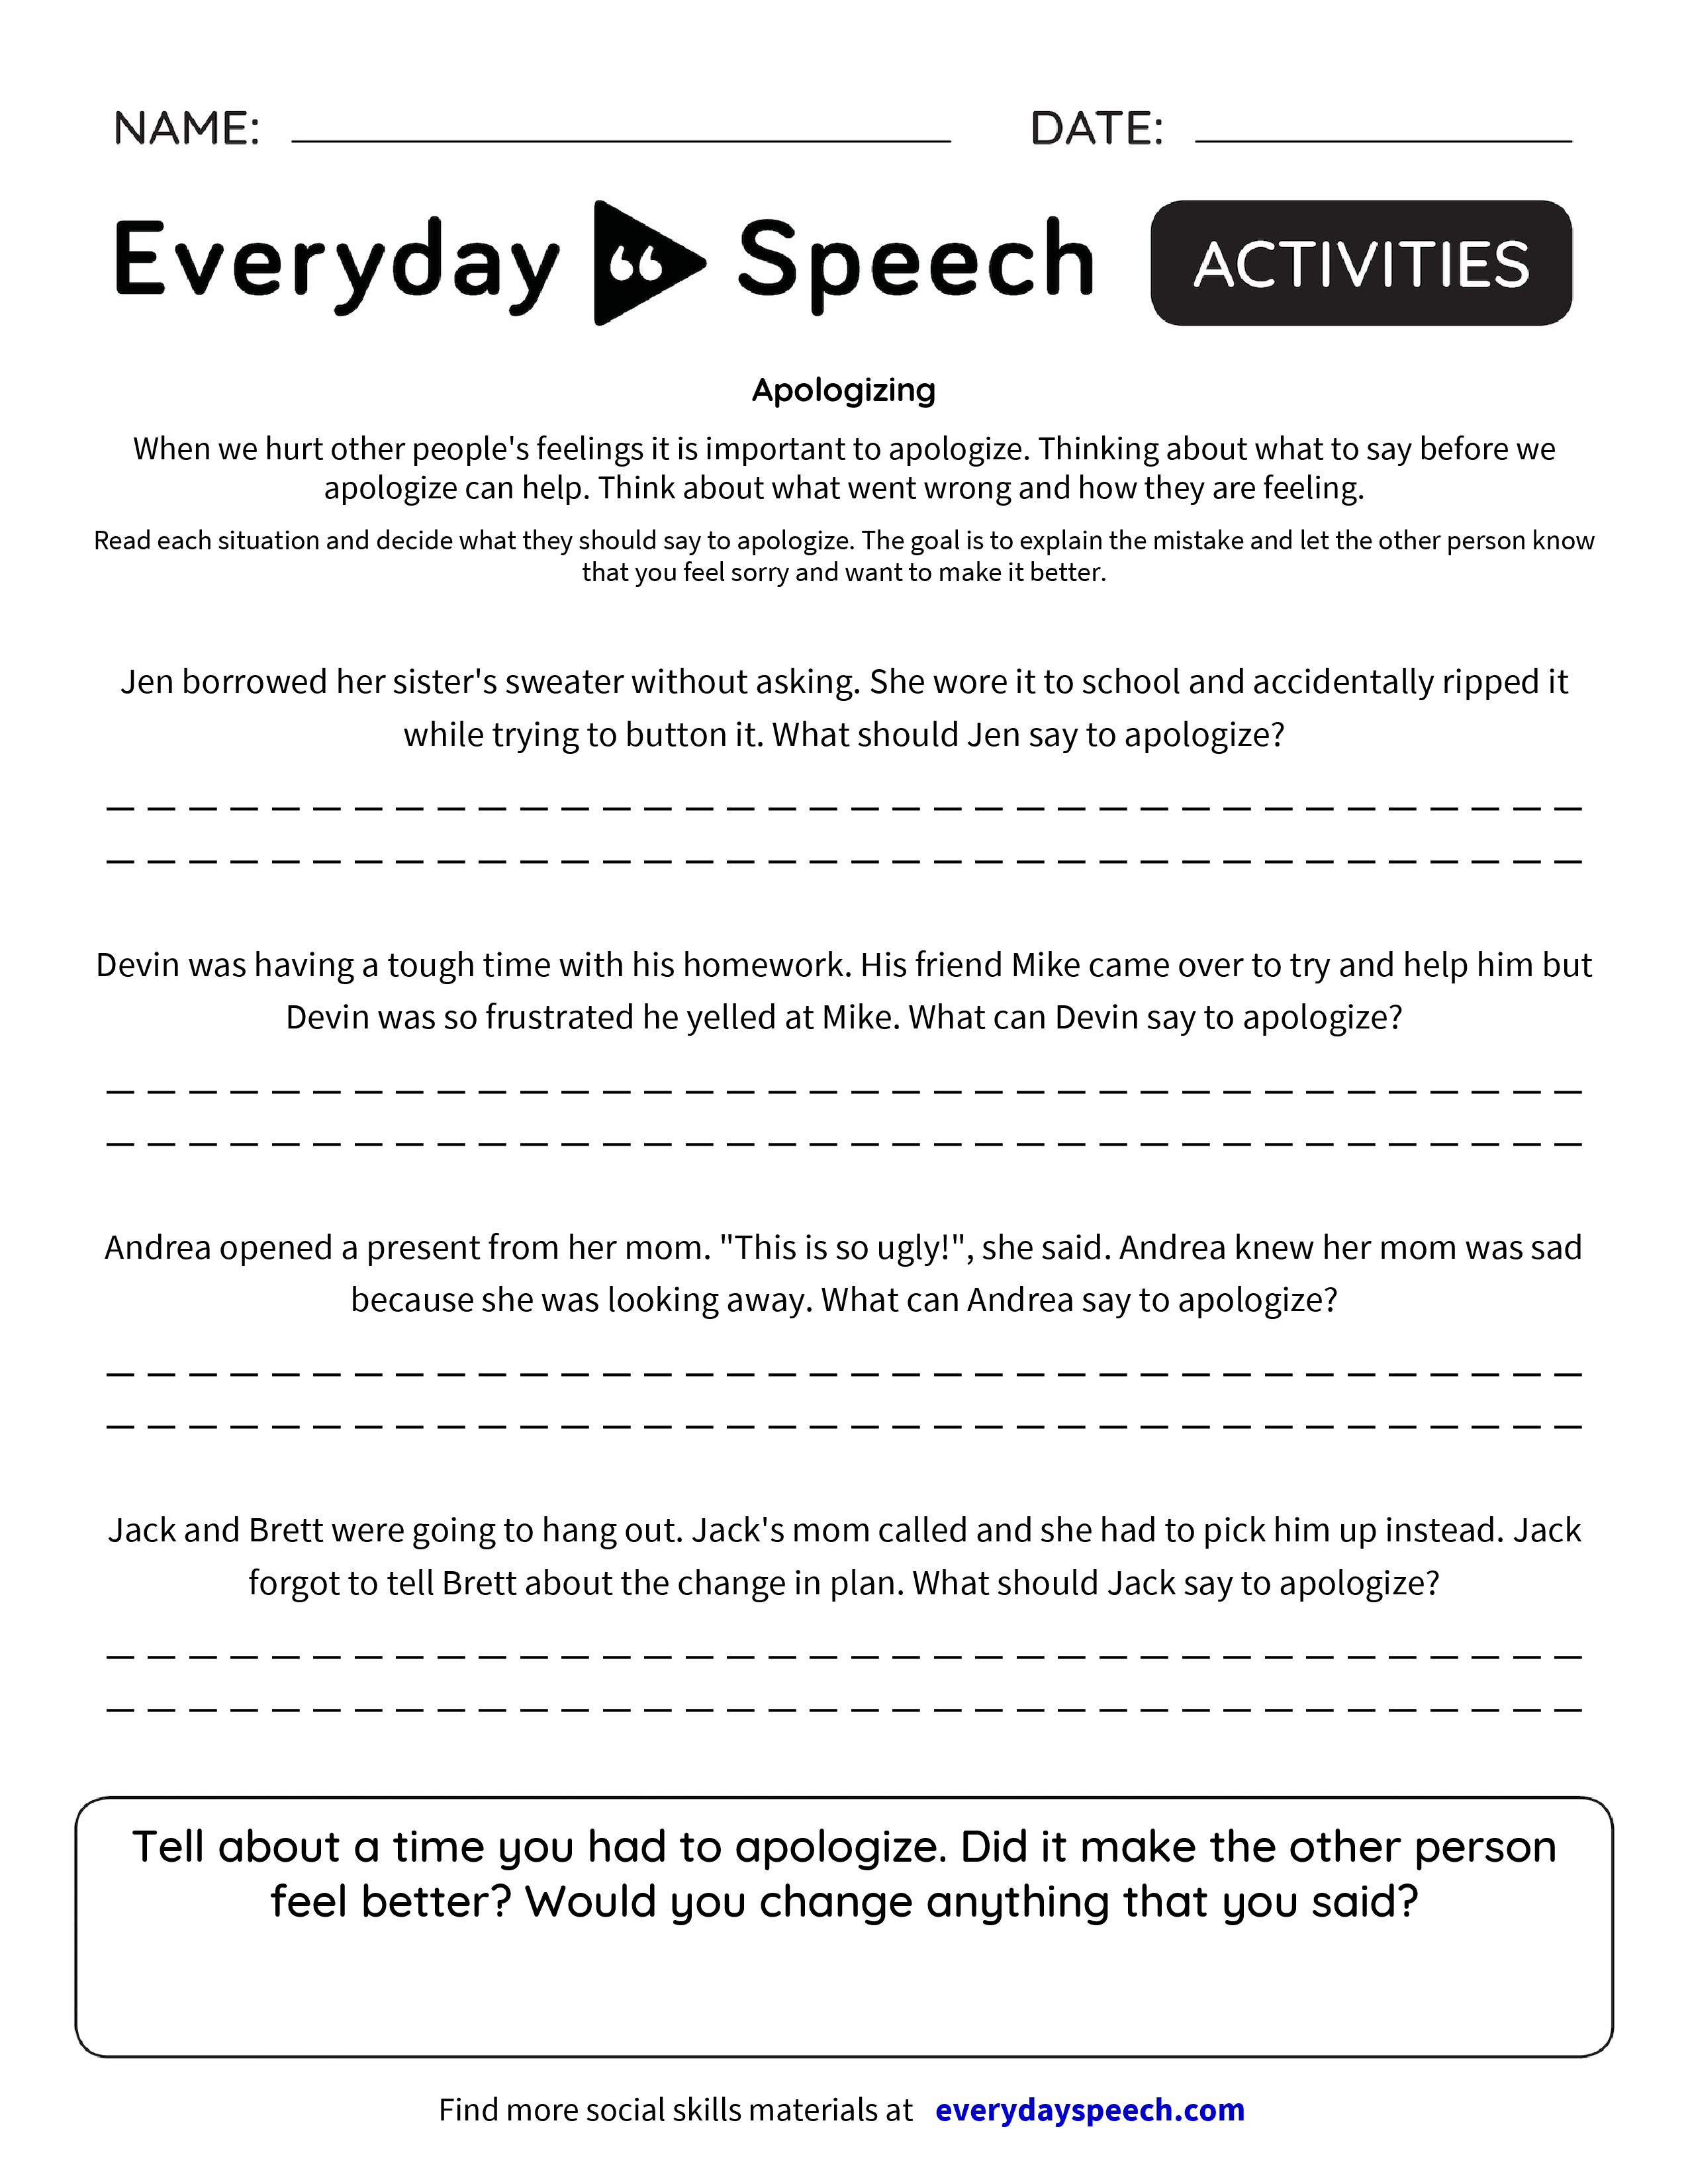 Worksheets Imago Dialogue Worksheet 450756052509 will planning worksheet pdf college math worksheets clause and phrase word apologizing everyday speech free rhyming words for kindergarten word